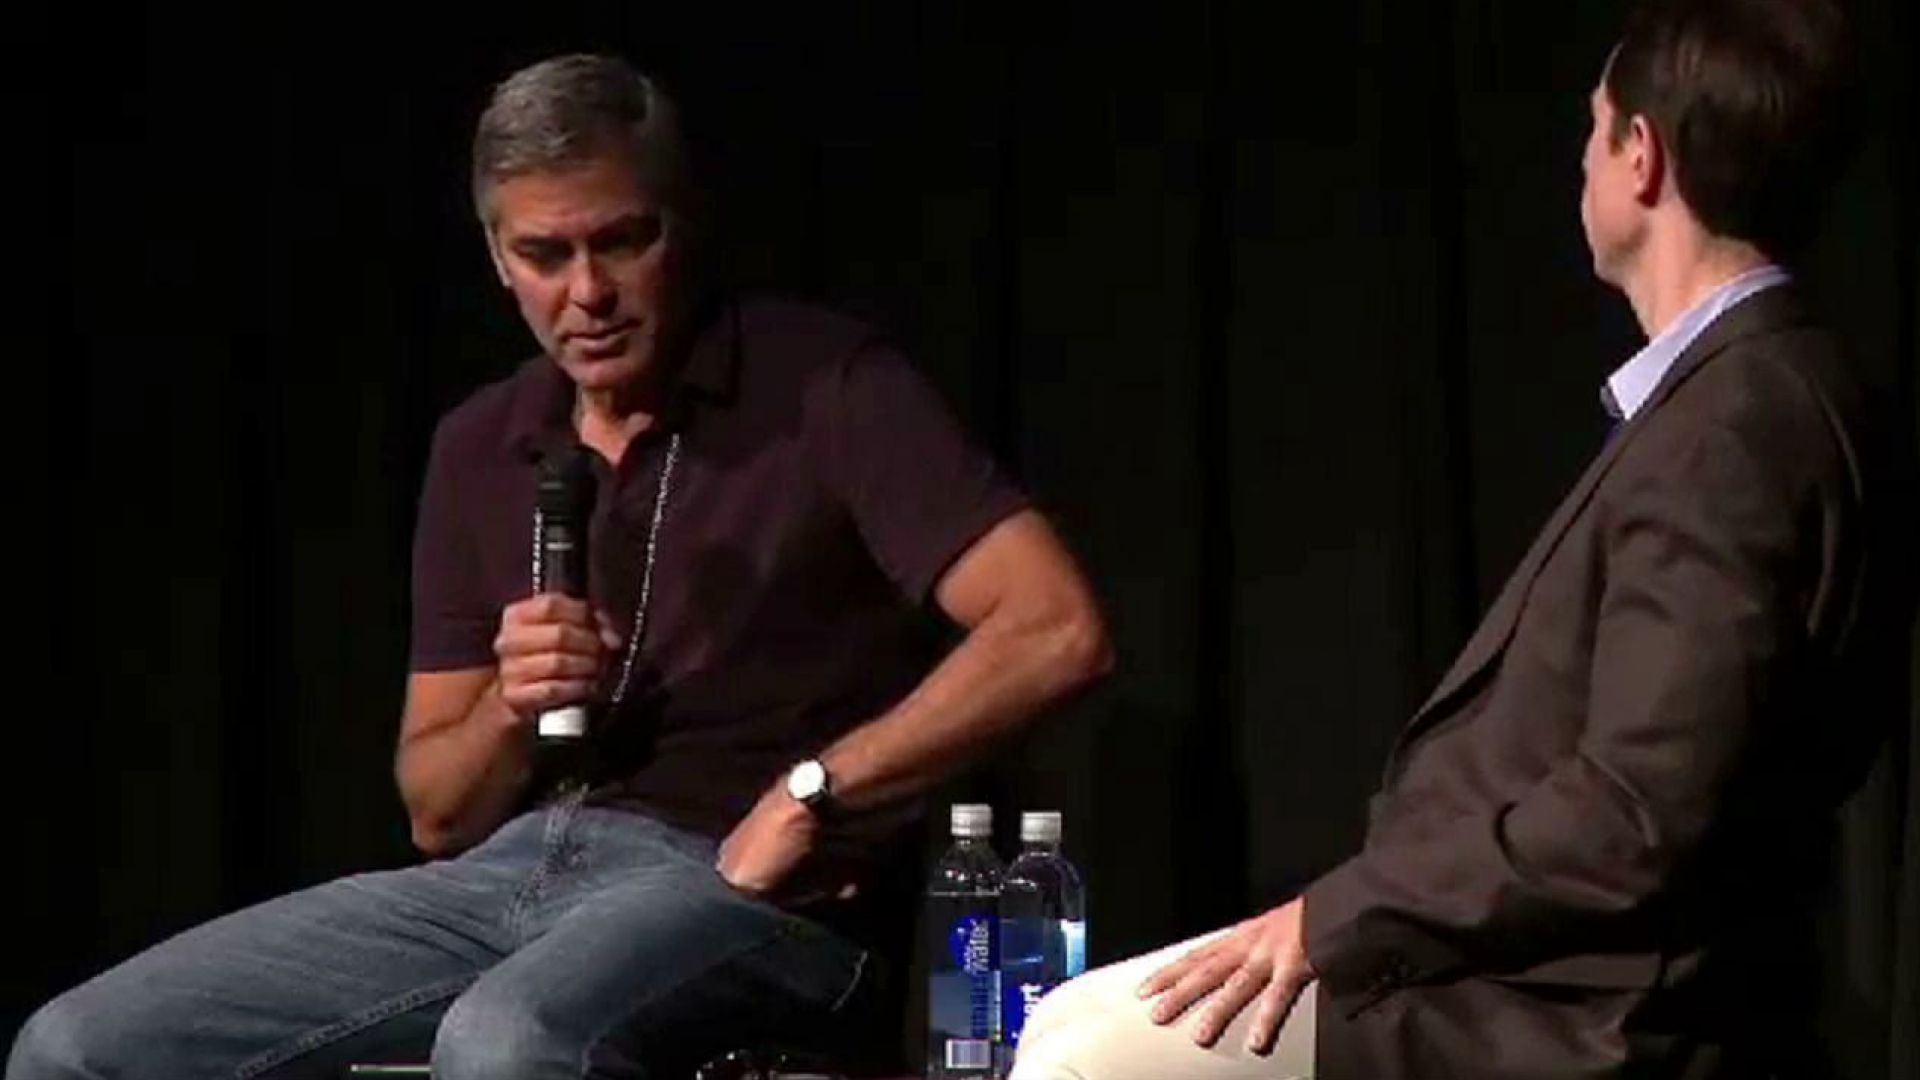 George Clooney says his role in The Descendants is about timing and age